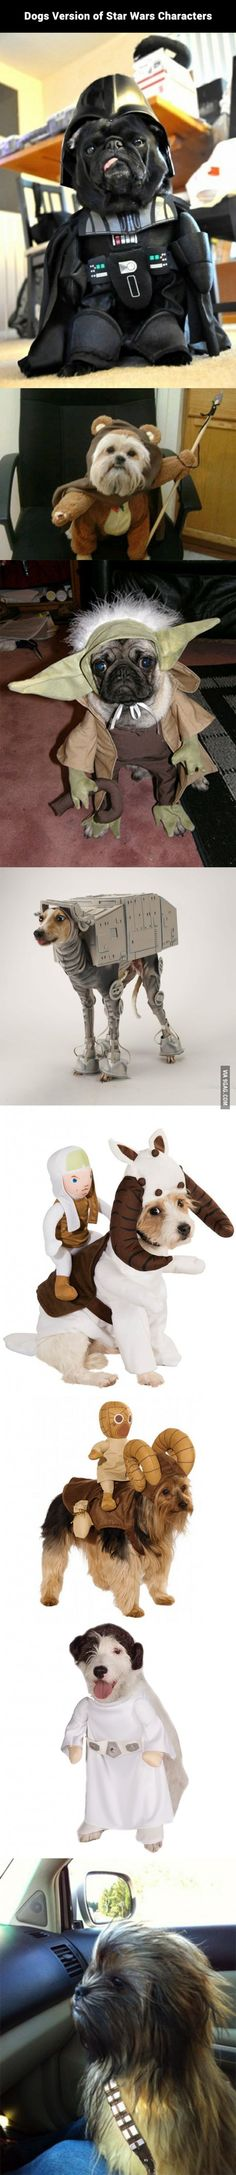 Dogs Version of Star Wars Characters